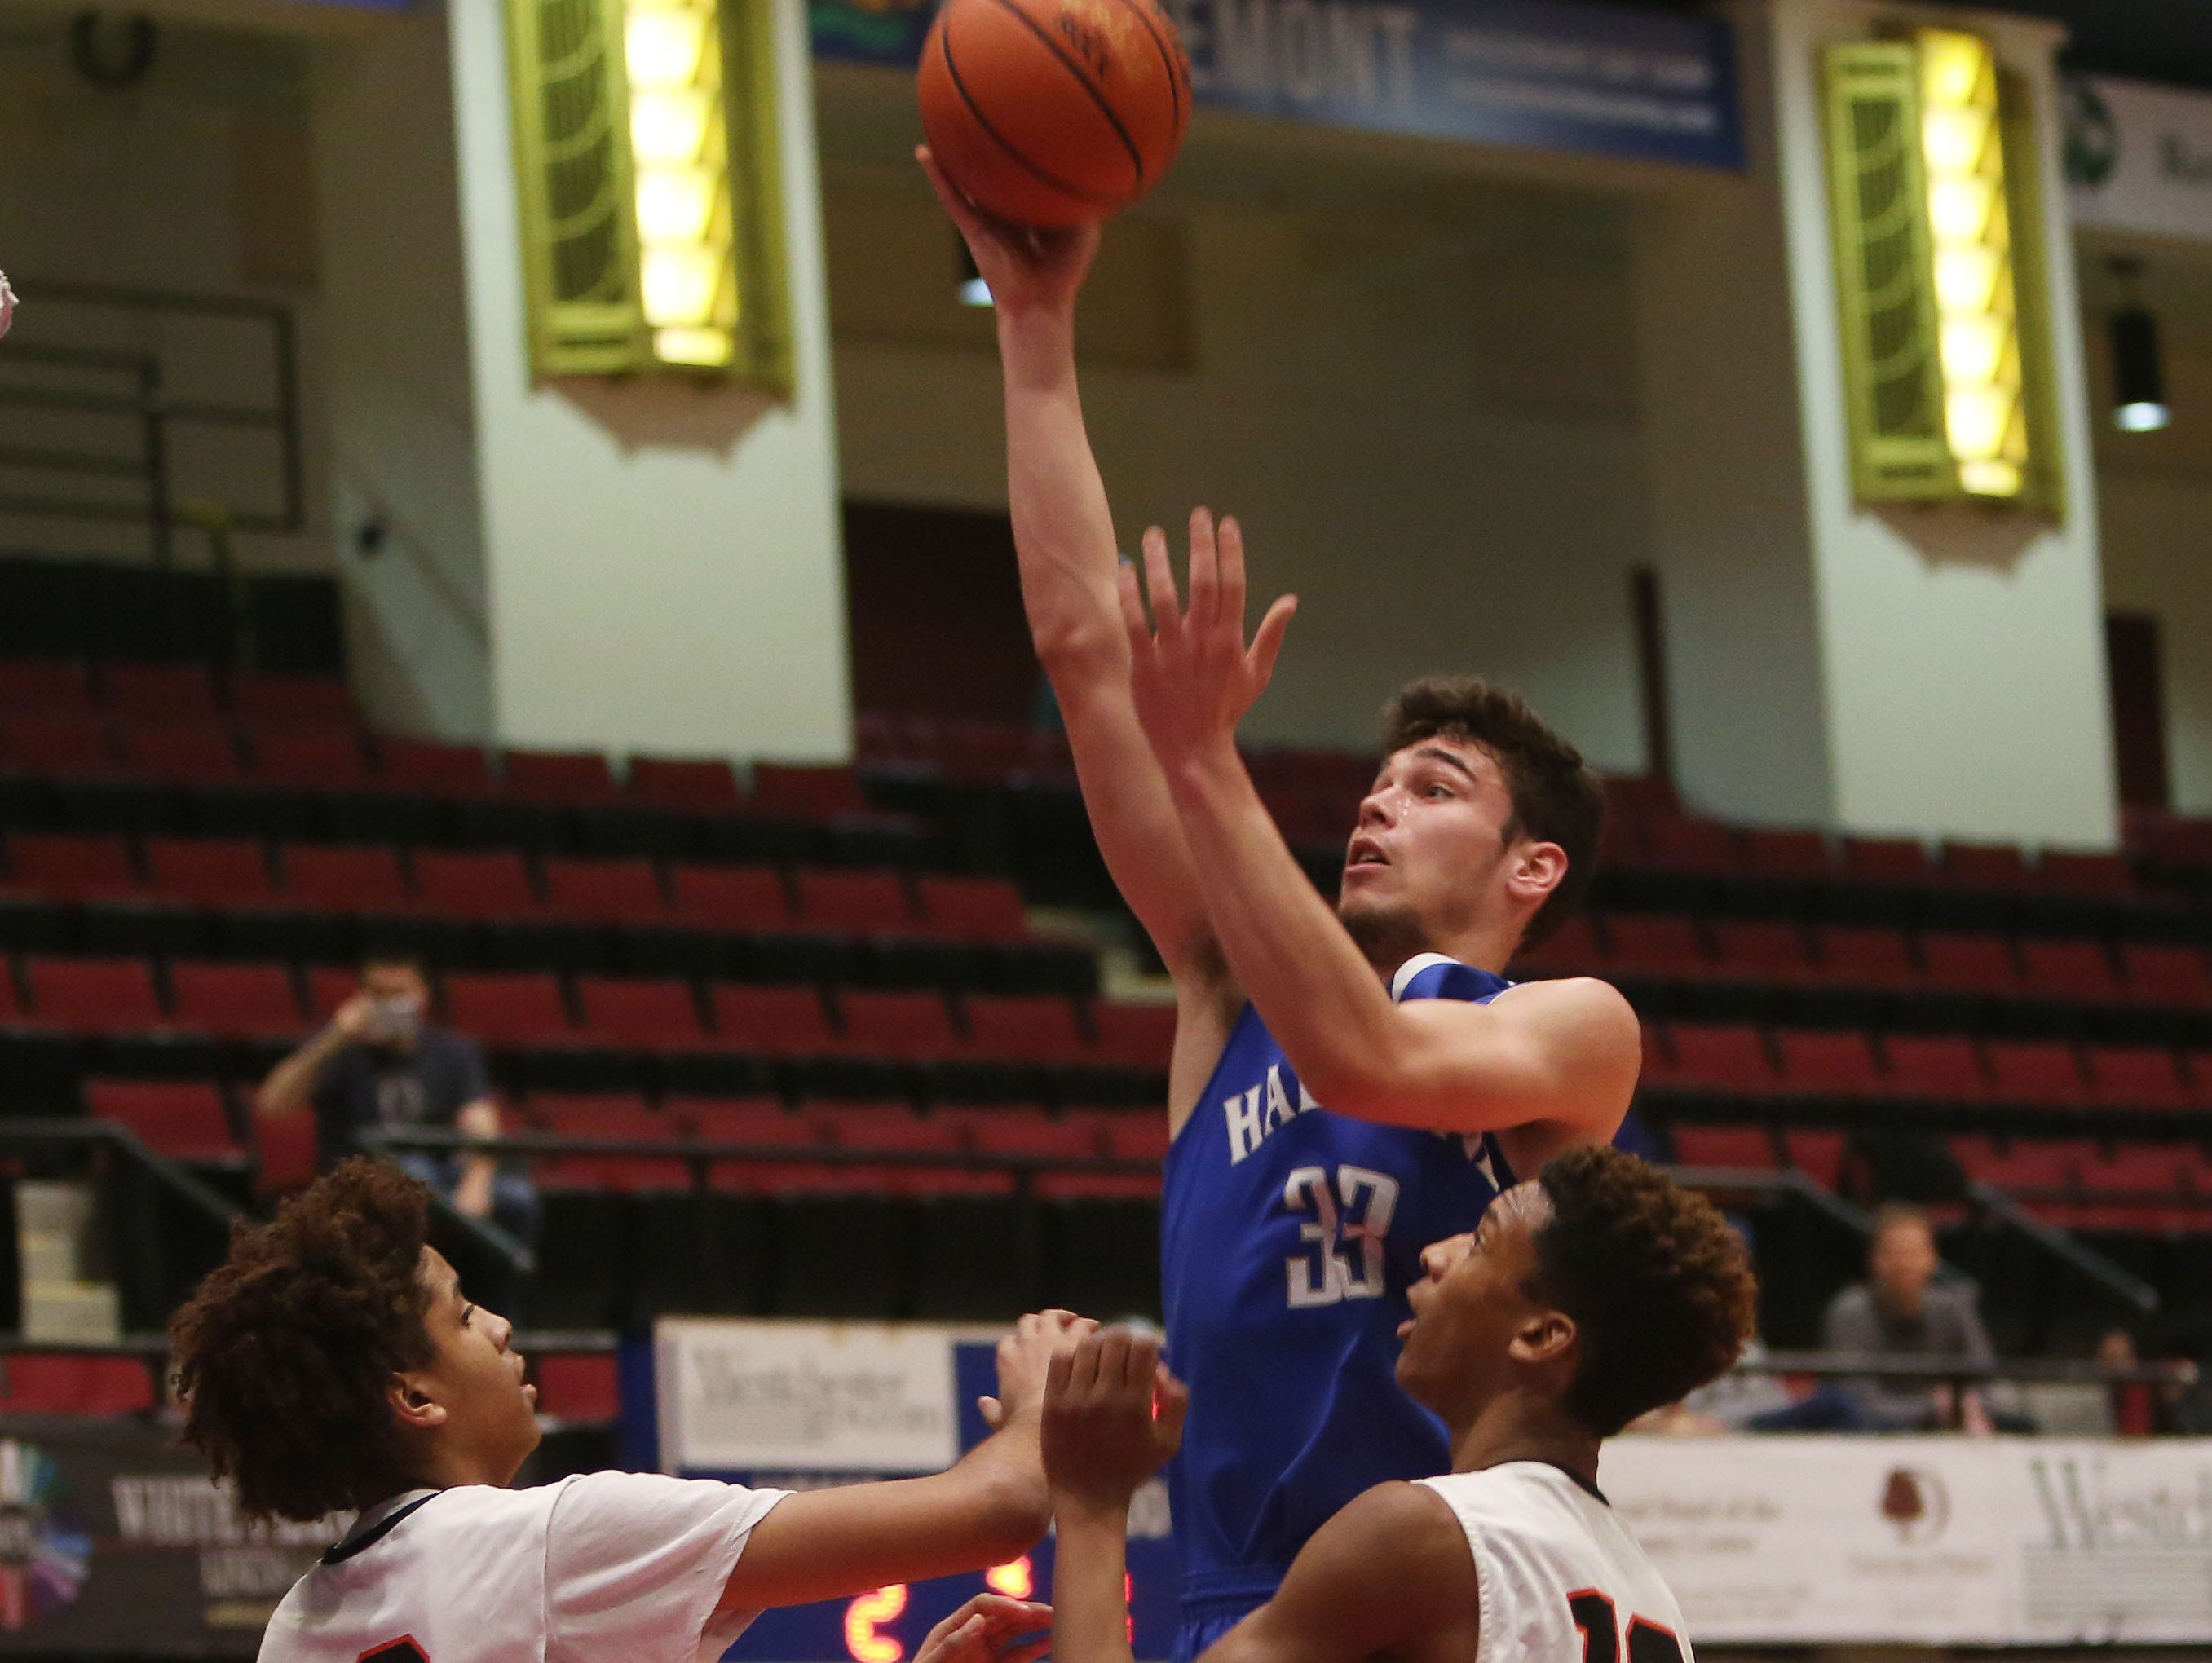 Haldane's Will Zuvic goes up for a shotover Tuckahoe's Bryan Murray (30) and Alexander Williams (13) during the first half of a boys Class C semifinal at the Westchester County Center in White Plains on Wednesday. Haldane won the game 44-34.